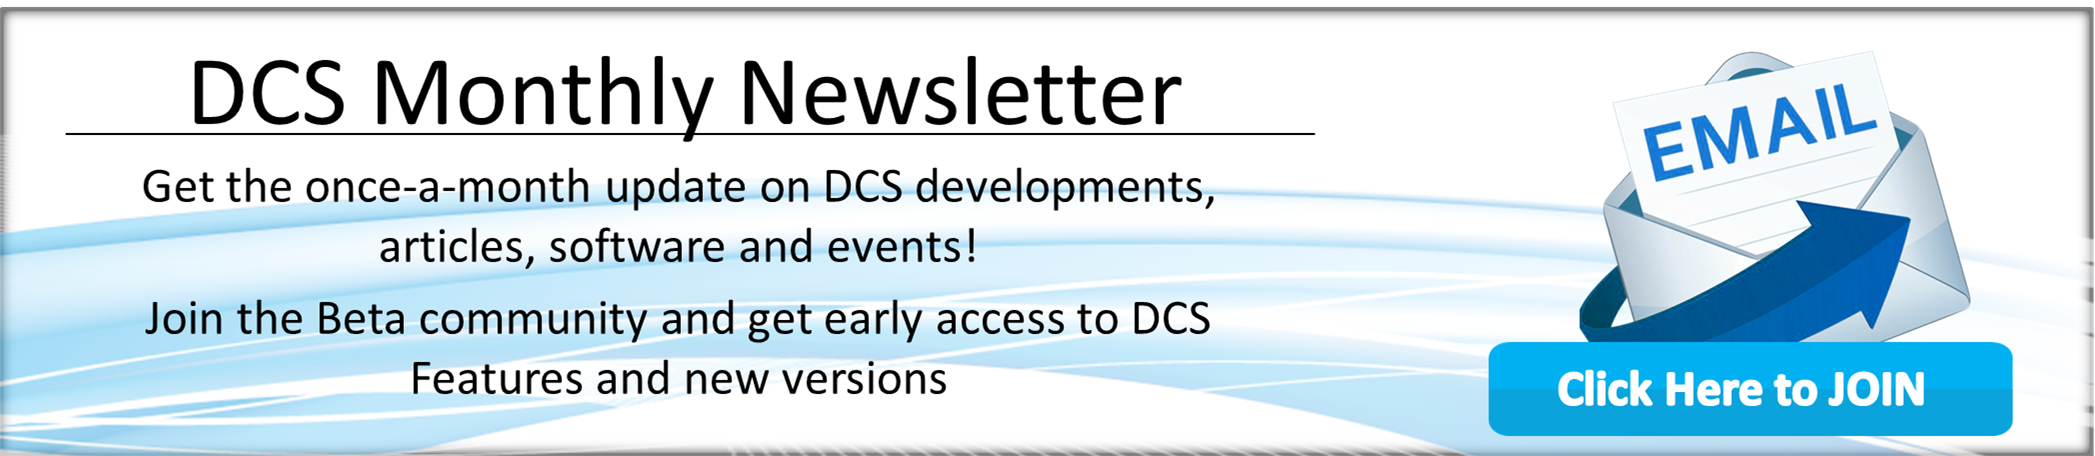 Join DCS Monthly